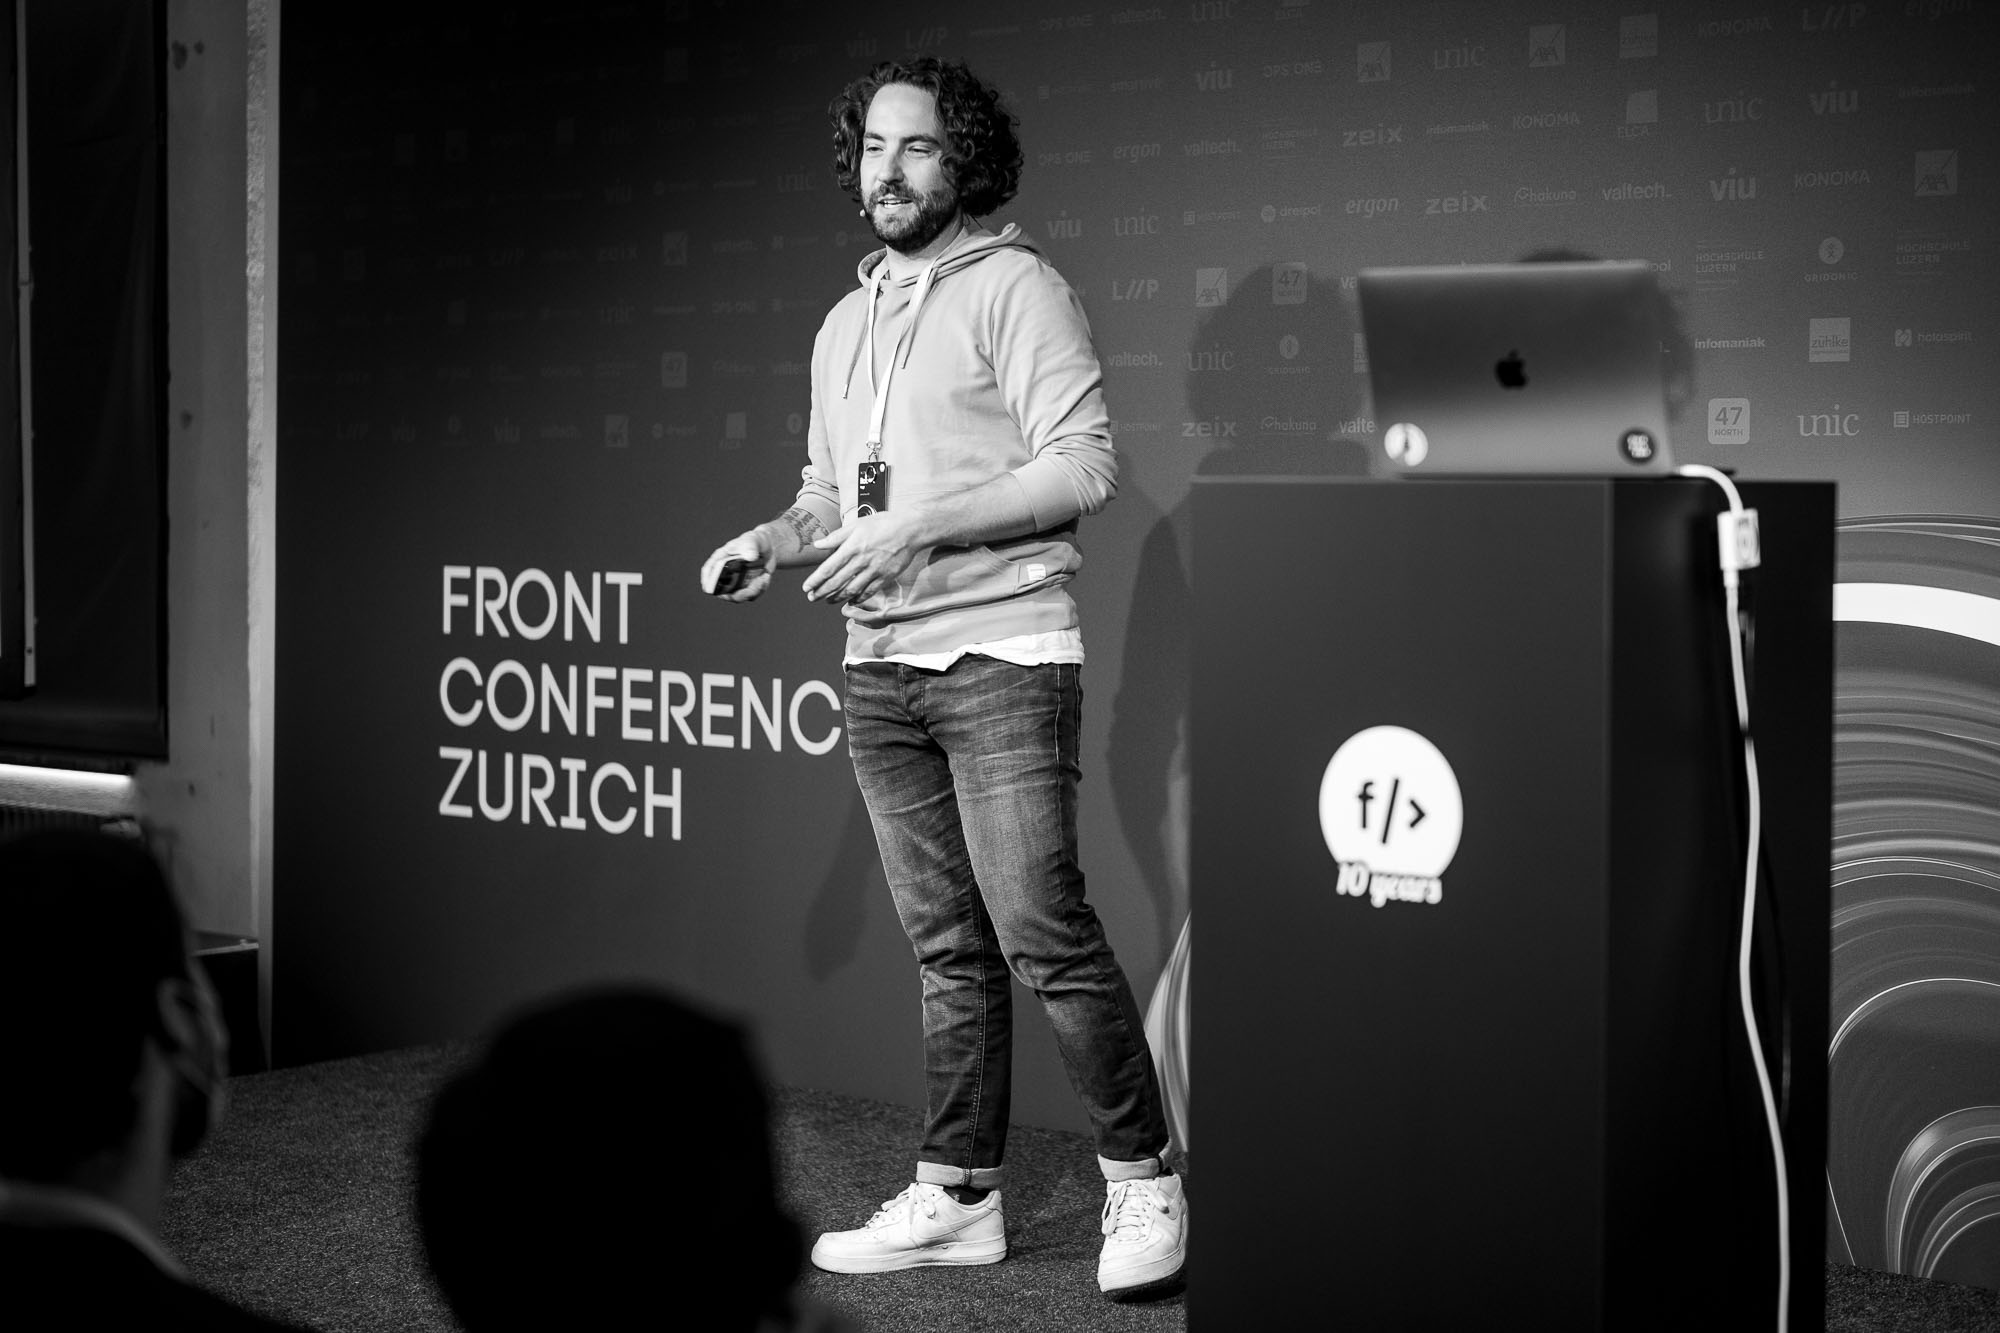 Robert Vogt on stage at Front Conference 2021